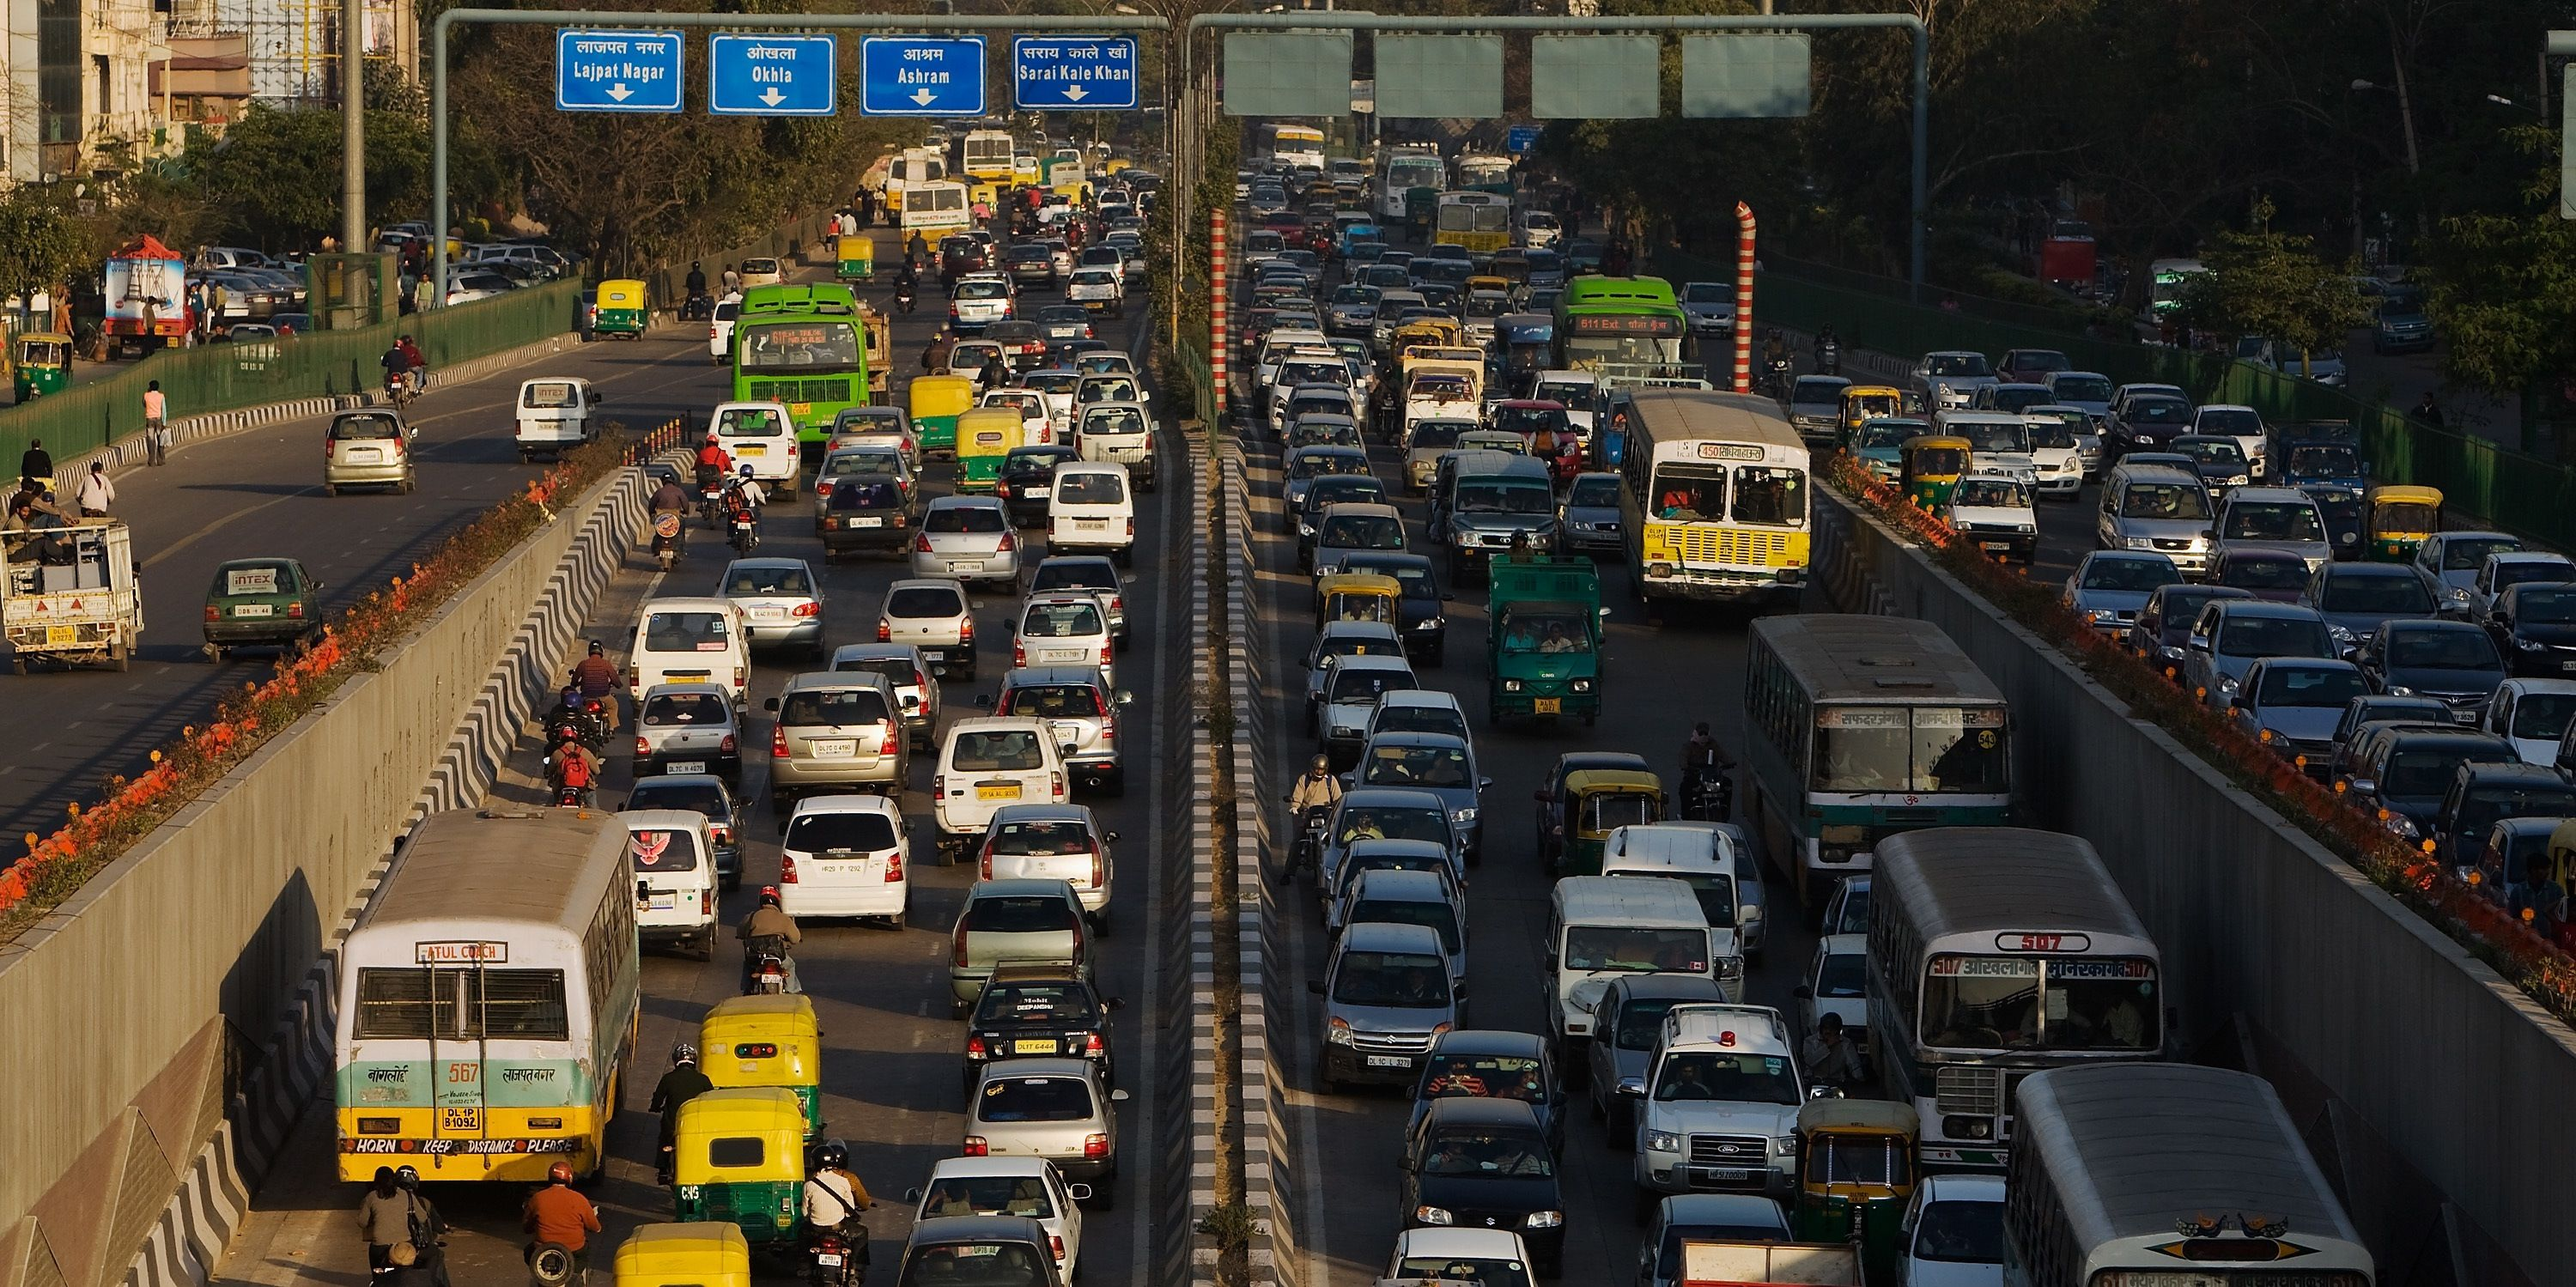 JSW Plans To Bring Electric Cars to India to Reduce